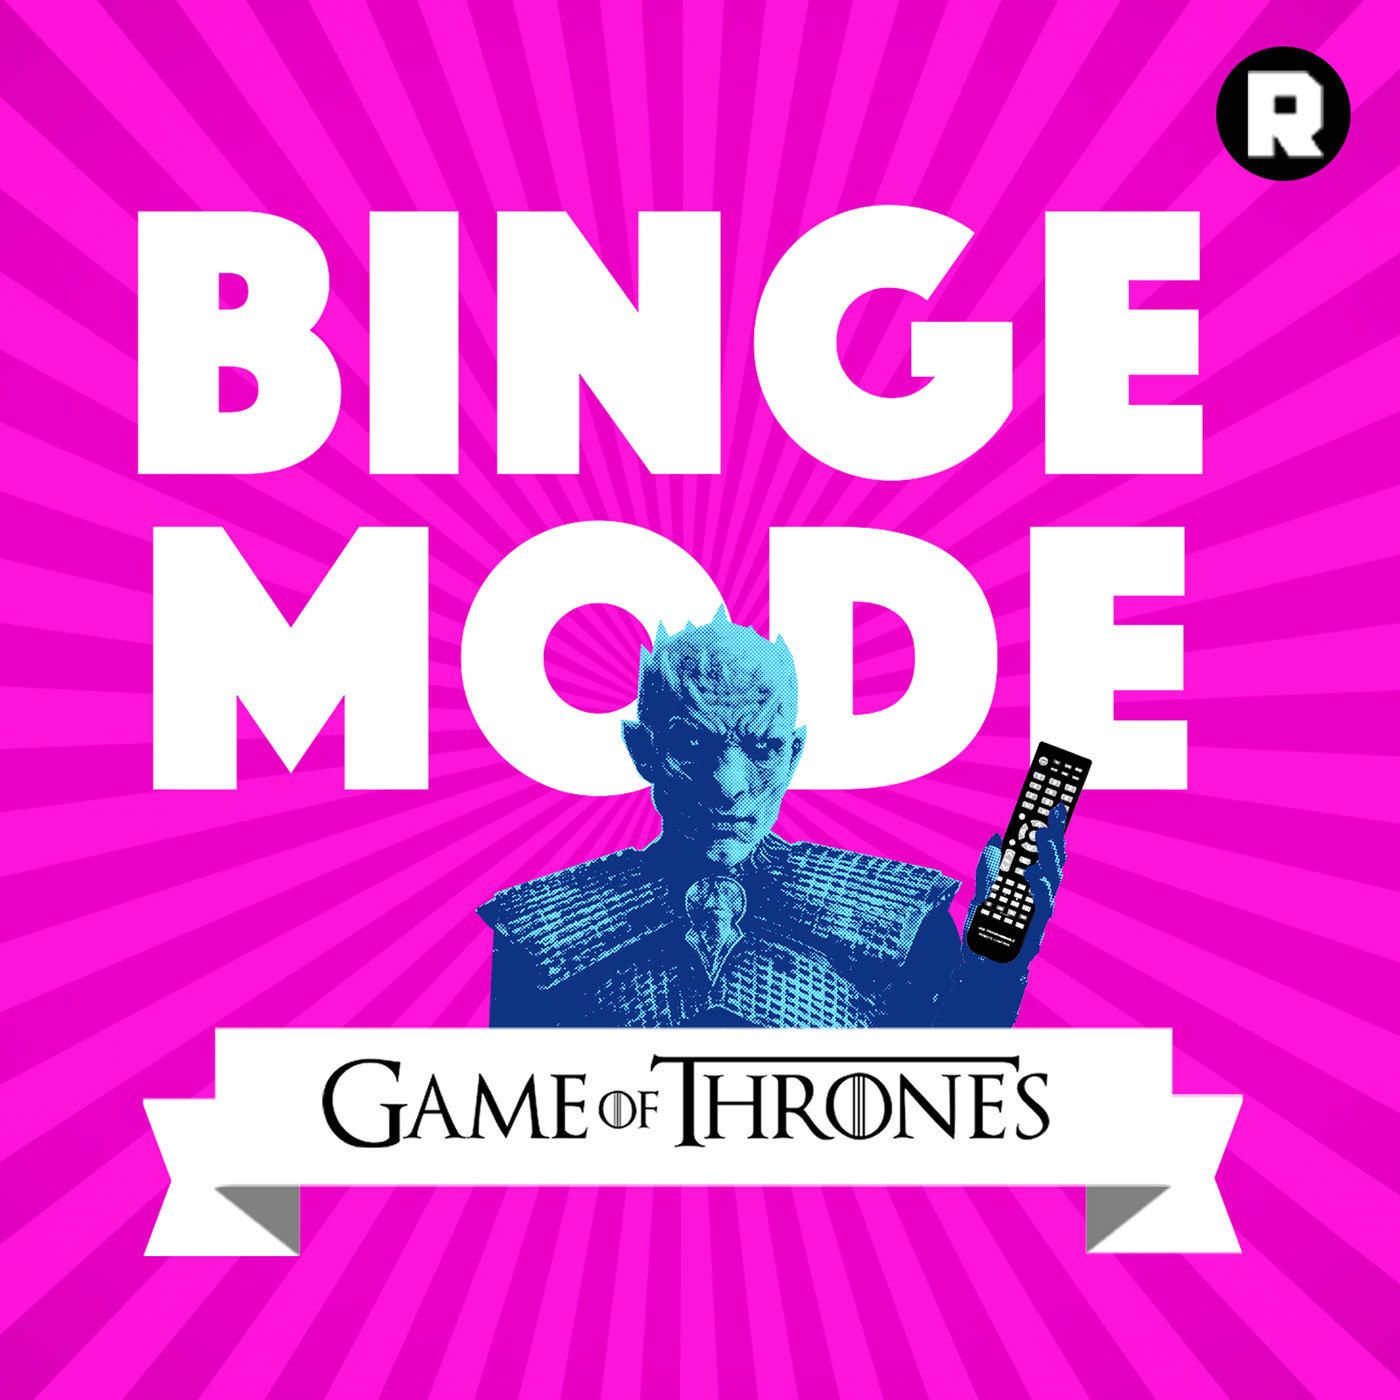 S2E10: Valar Morghulis | Game of Thrones